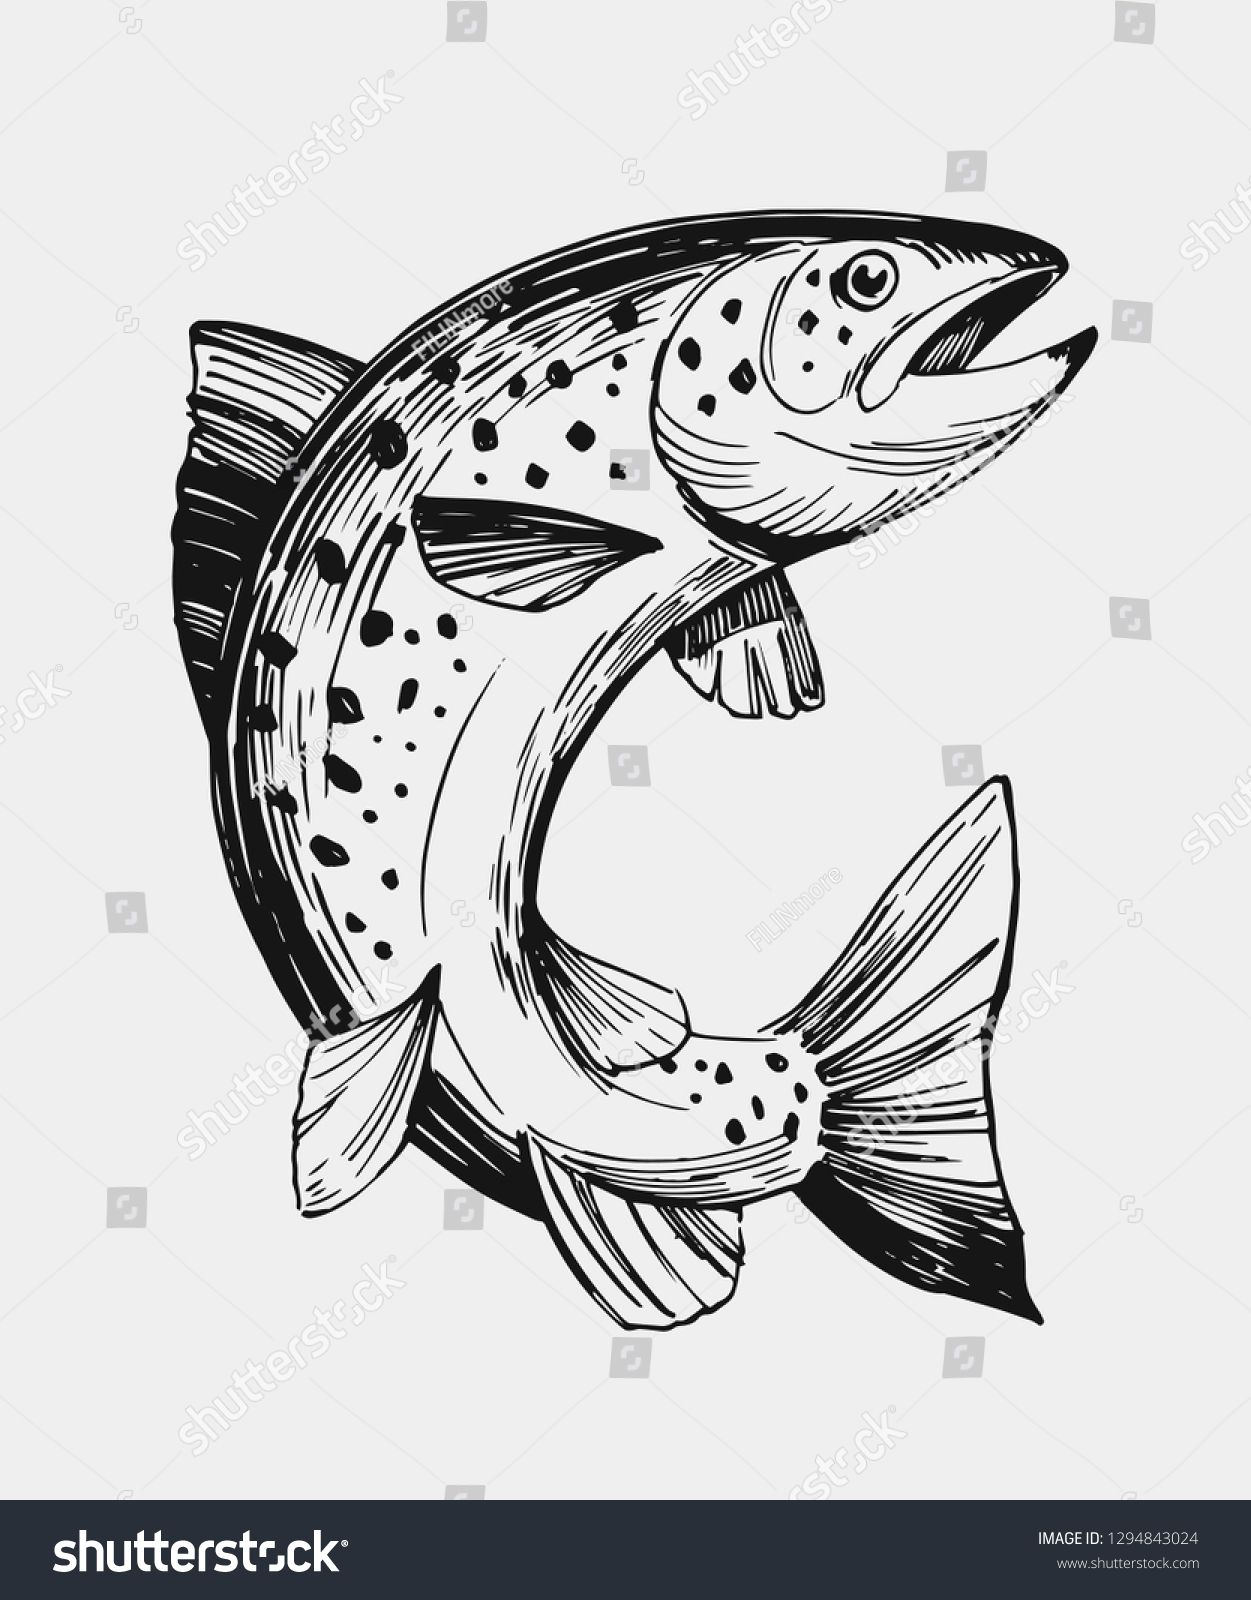 Sketch Fish Salmon Trout Hand Drawn Stock Vector Royalty Free 1294843024 In 2020 Fish Sketch Salmon Drawing How To Draw Hands